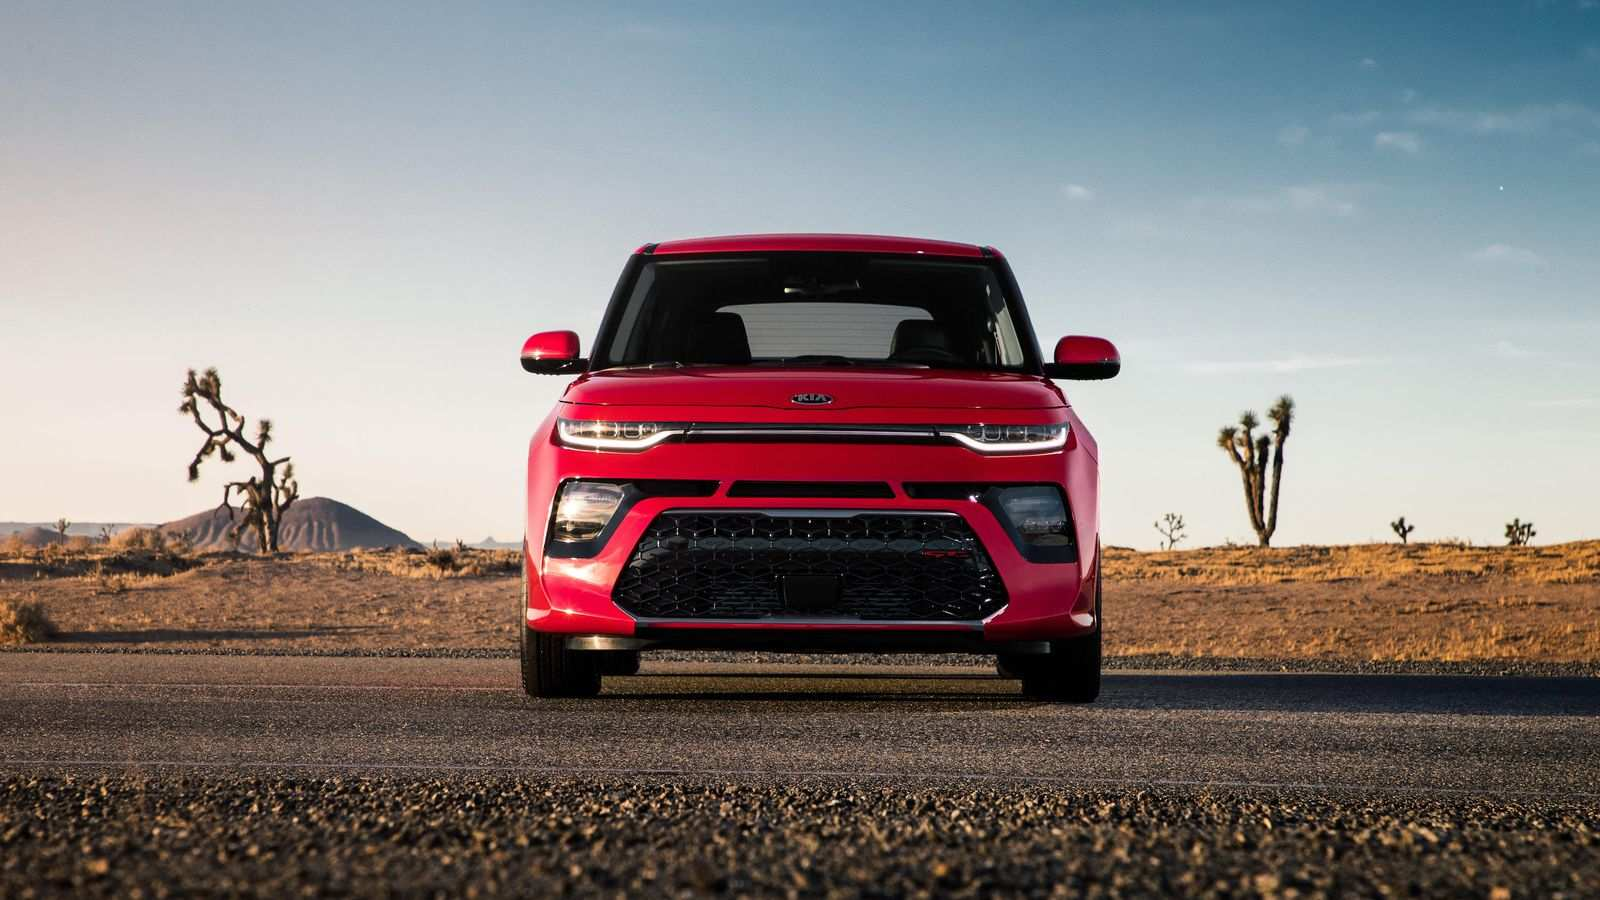 77 Great 2020 Kia Soul Vs Honda Hrv Redesign with 2020 Kia Soul Vs Honda Hrv